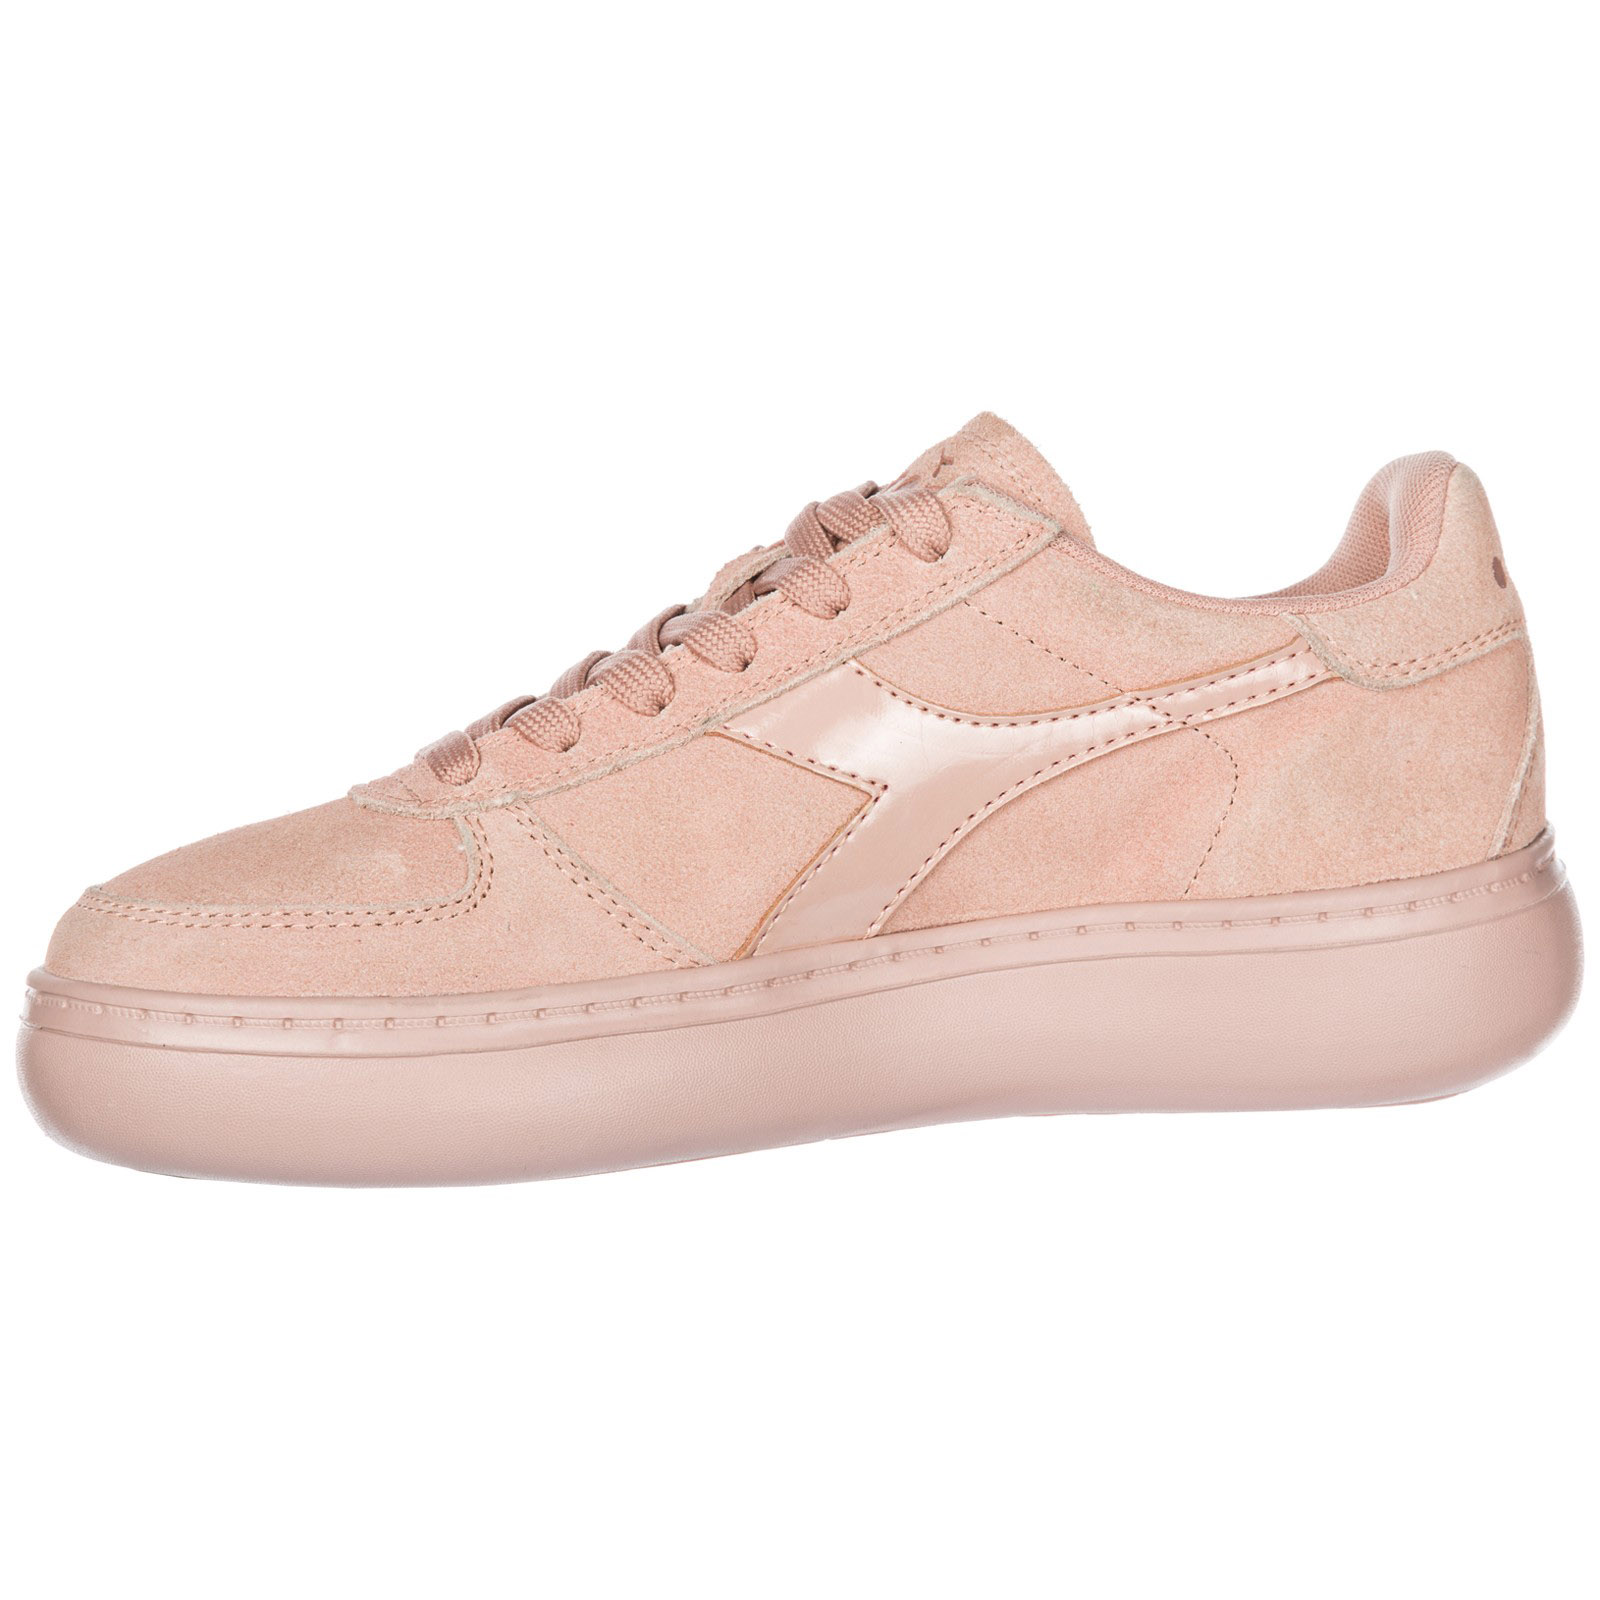 8348e530e5 Women's shoes suede trainers sneakers b. elite wide